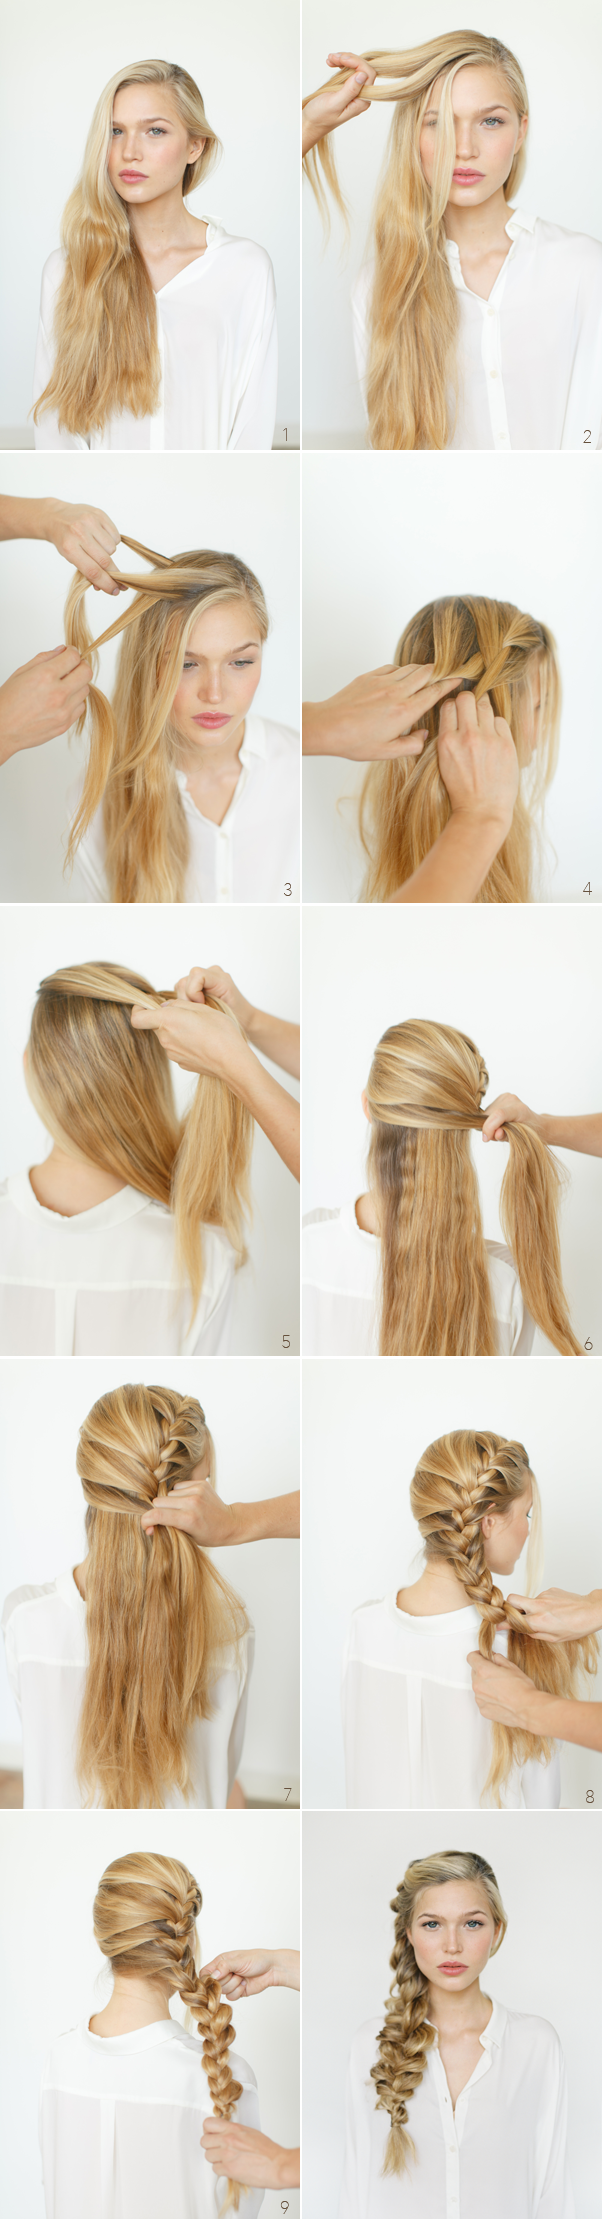 Surprising 12 Romantic Braided Hairstyles With Useful Tutorials Pretty Designs Hairstyle Inspiration Daily Dogsangcom